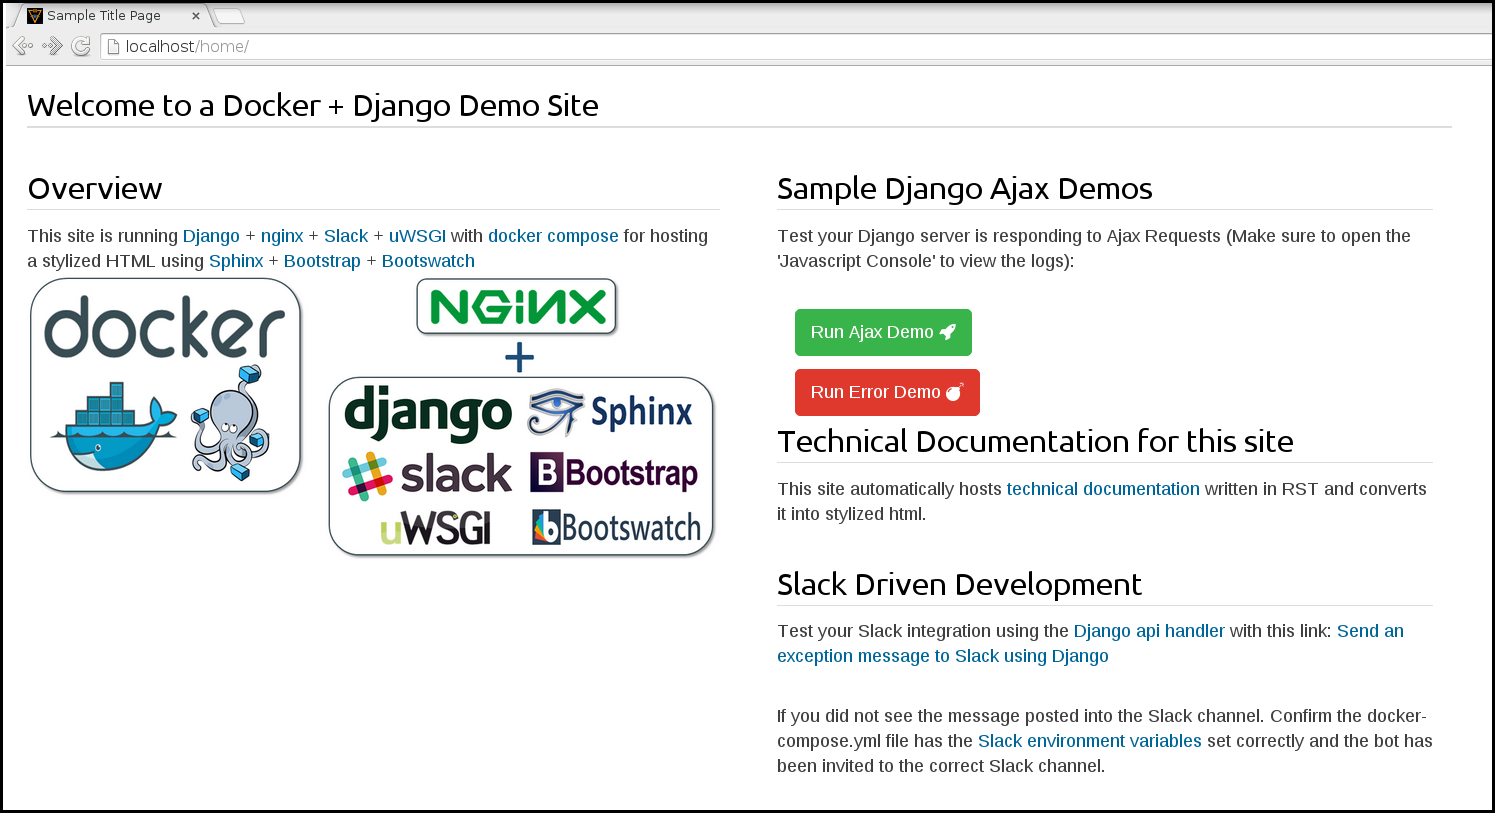 http://jaypjohnson.com/_images/image_2016-07-10_home-page-demo-ajax.png